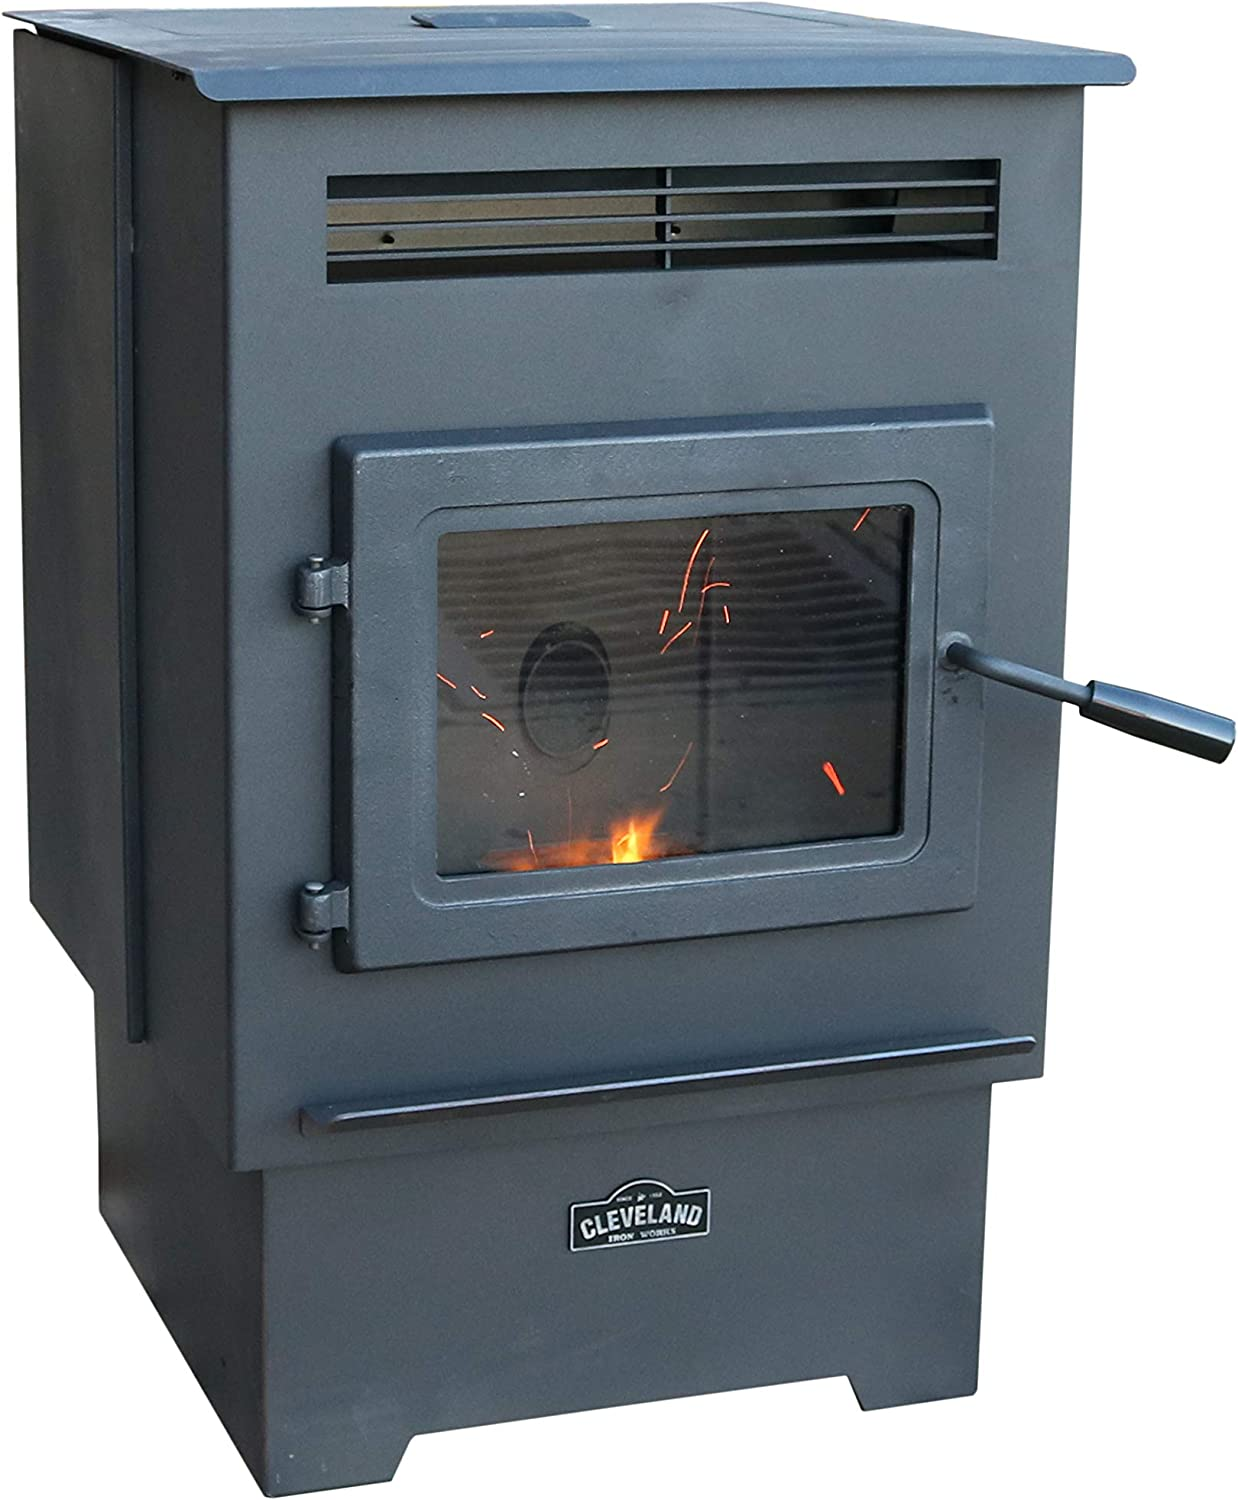 Cleveland Iron Works PS60W-CIW Pellet Stove, Black